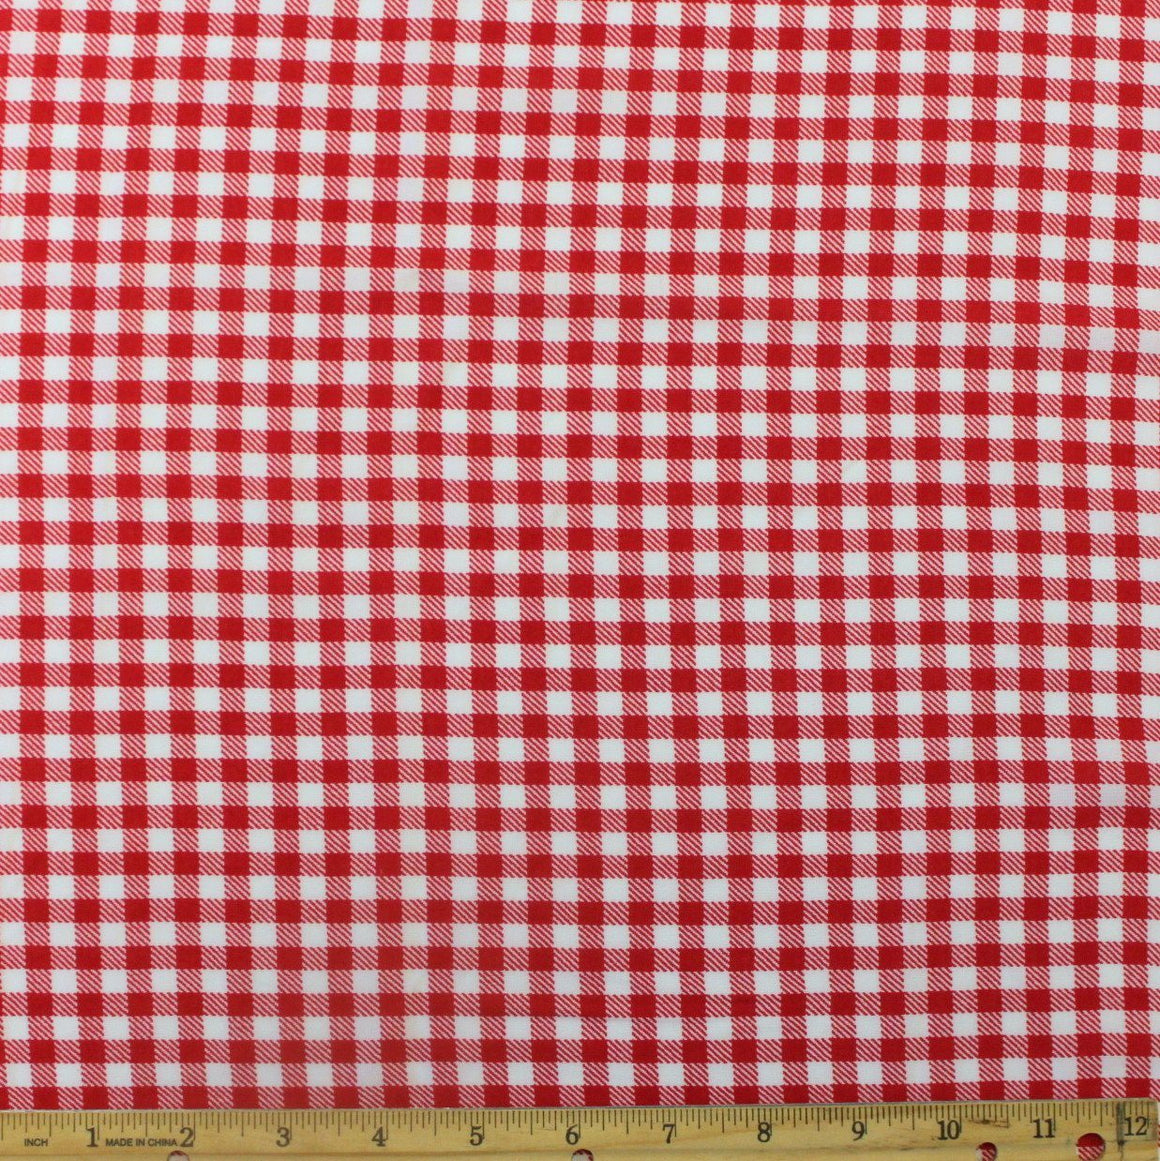 Red and White Check Gingham Rayon Challis, 1 yard - Raspberry Creek Fabrics